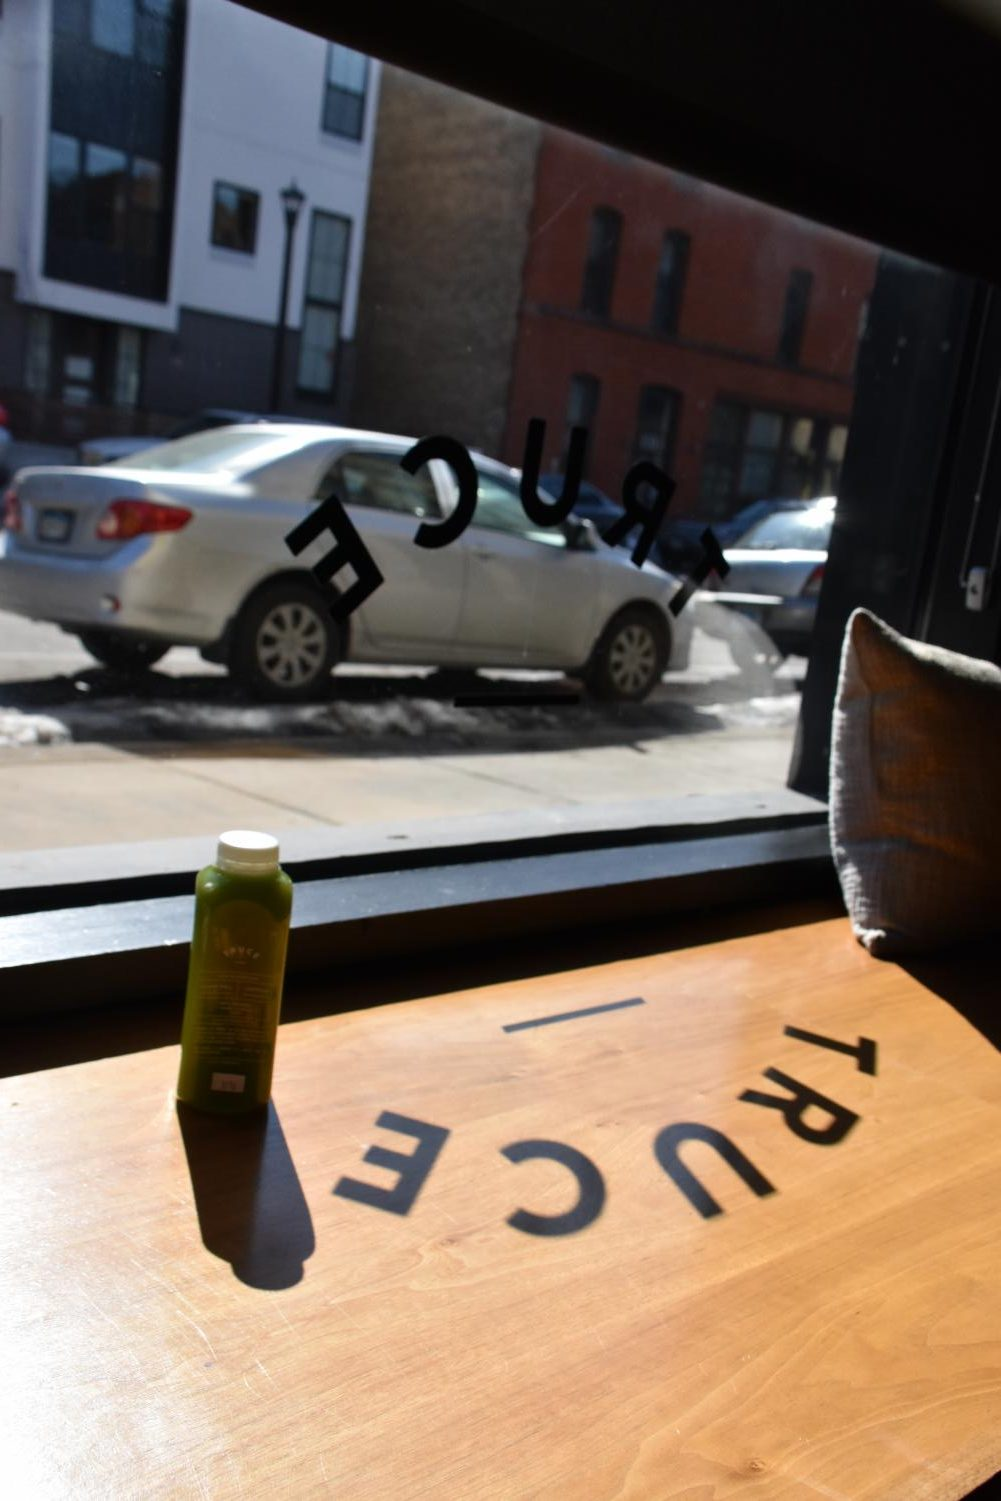 North Loop's location offers Morning Greens juice with sunlight included.